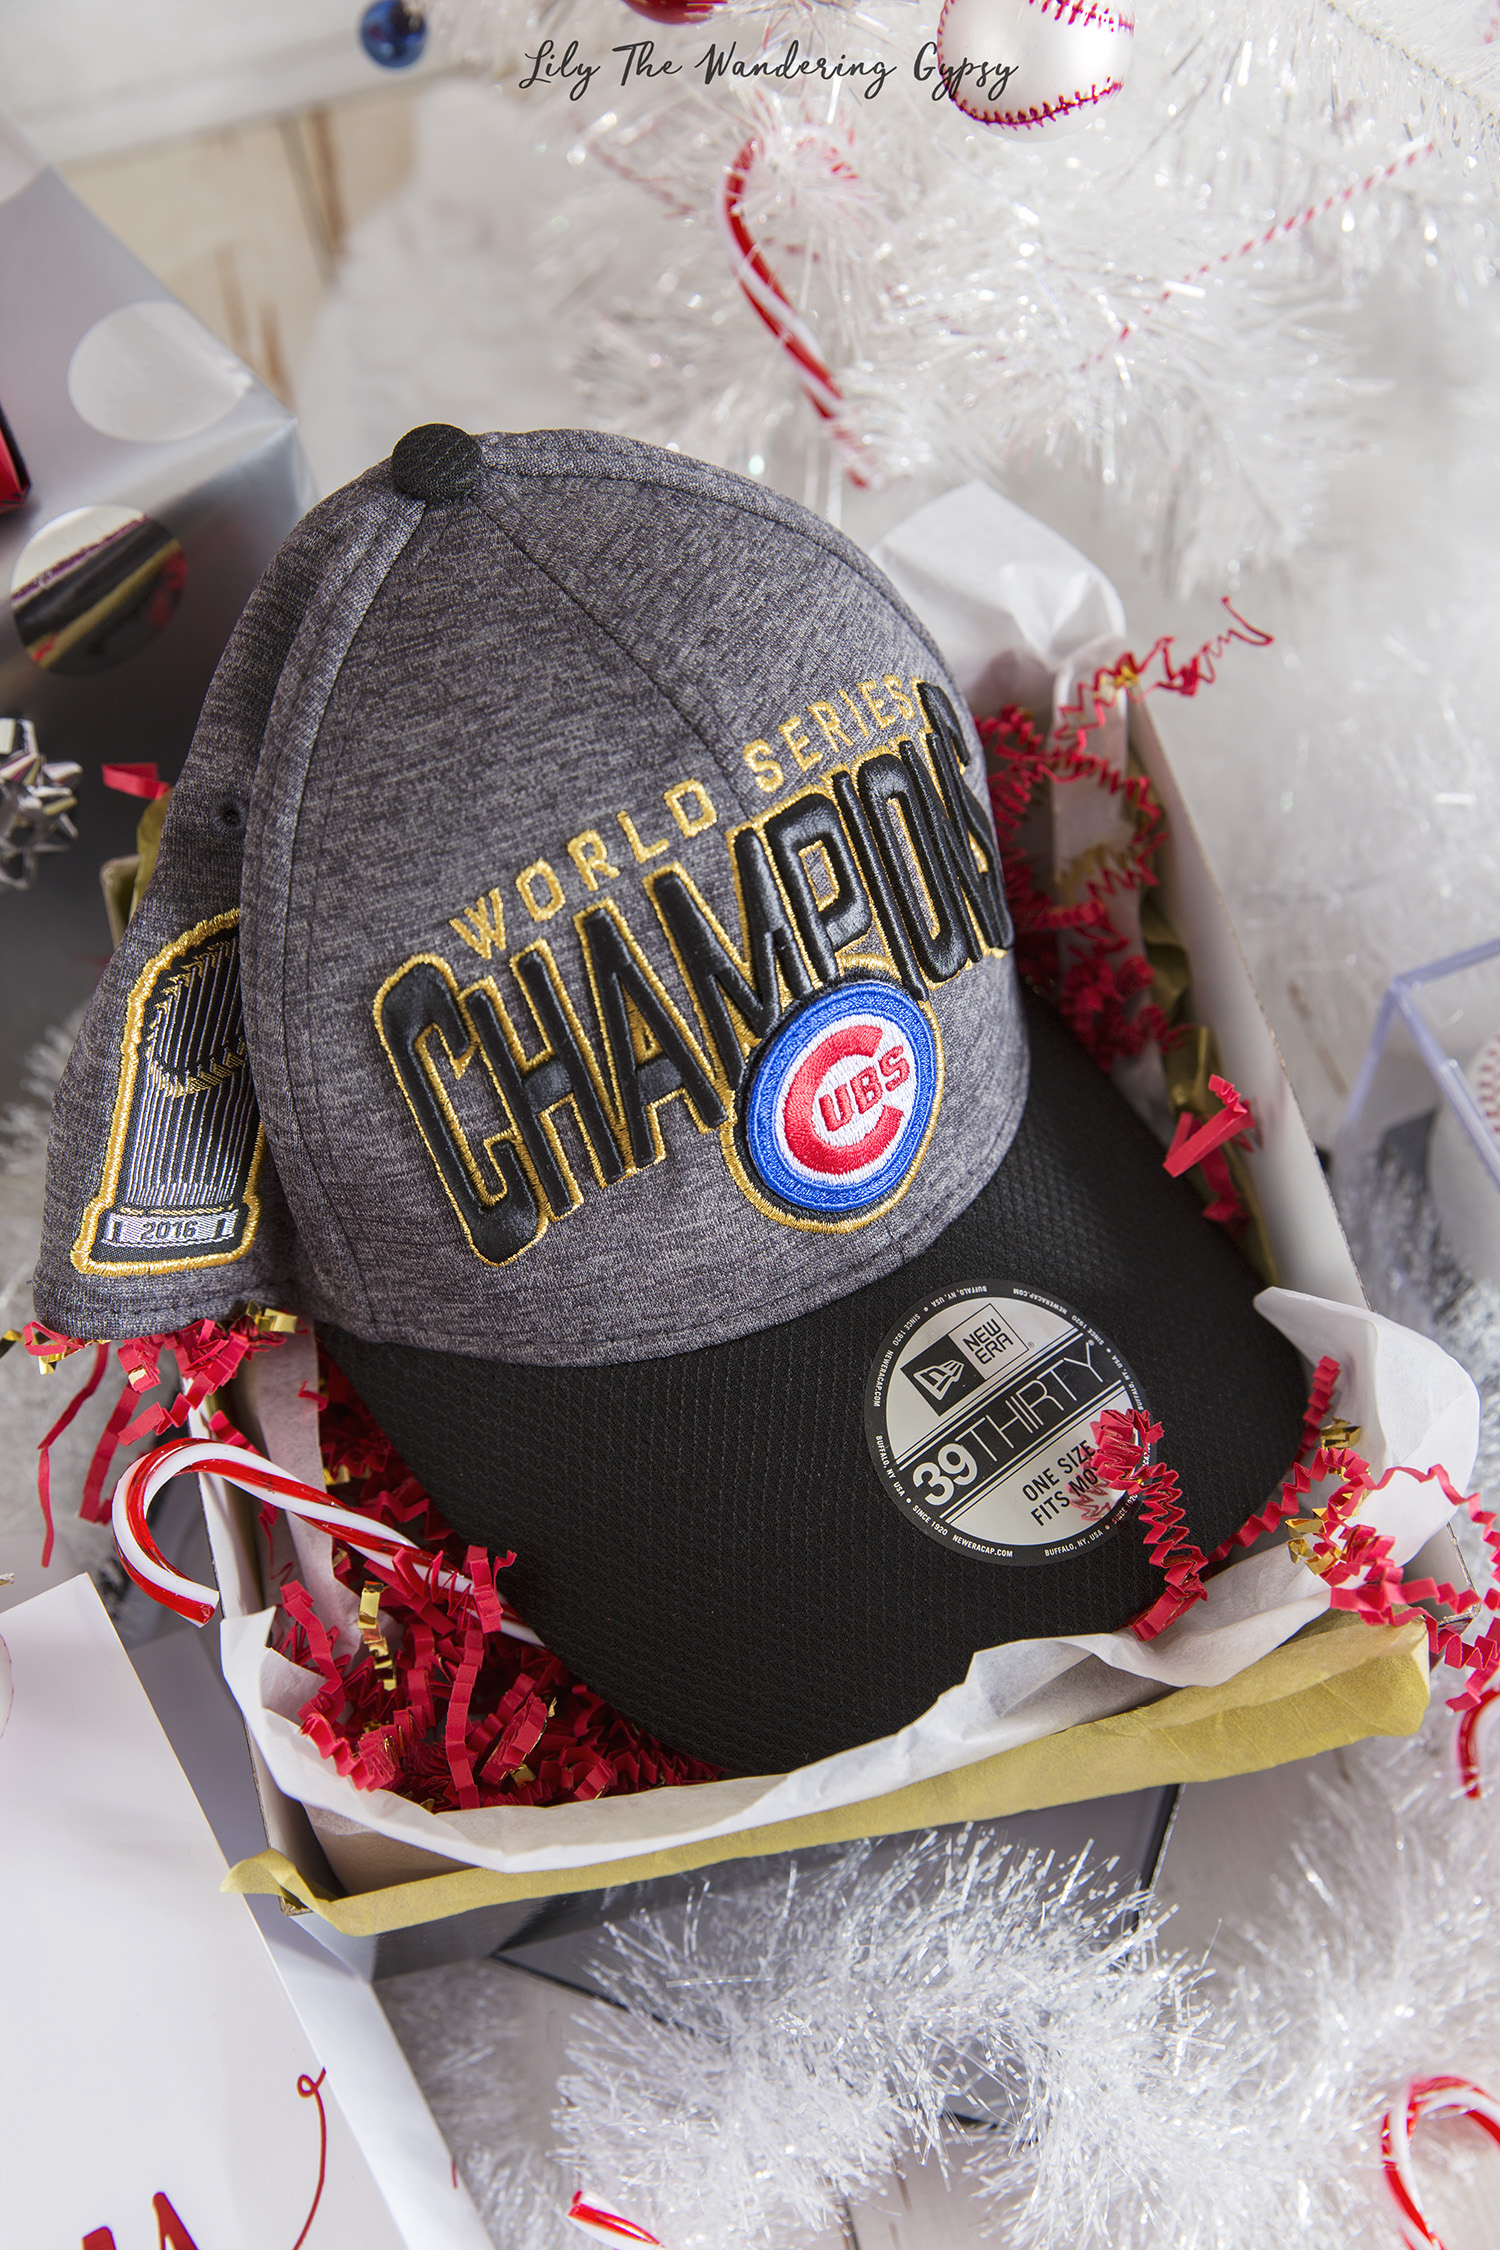 This hat is so nice!